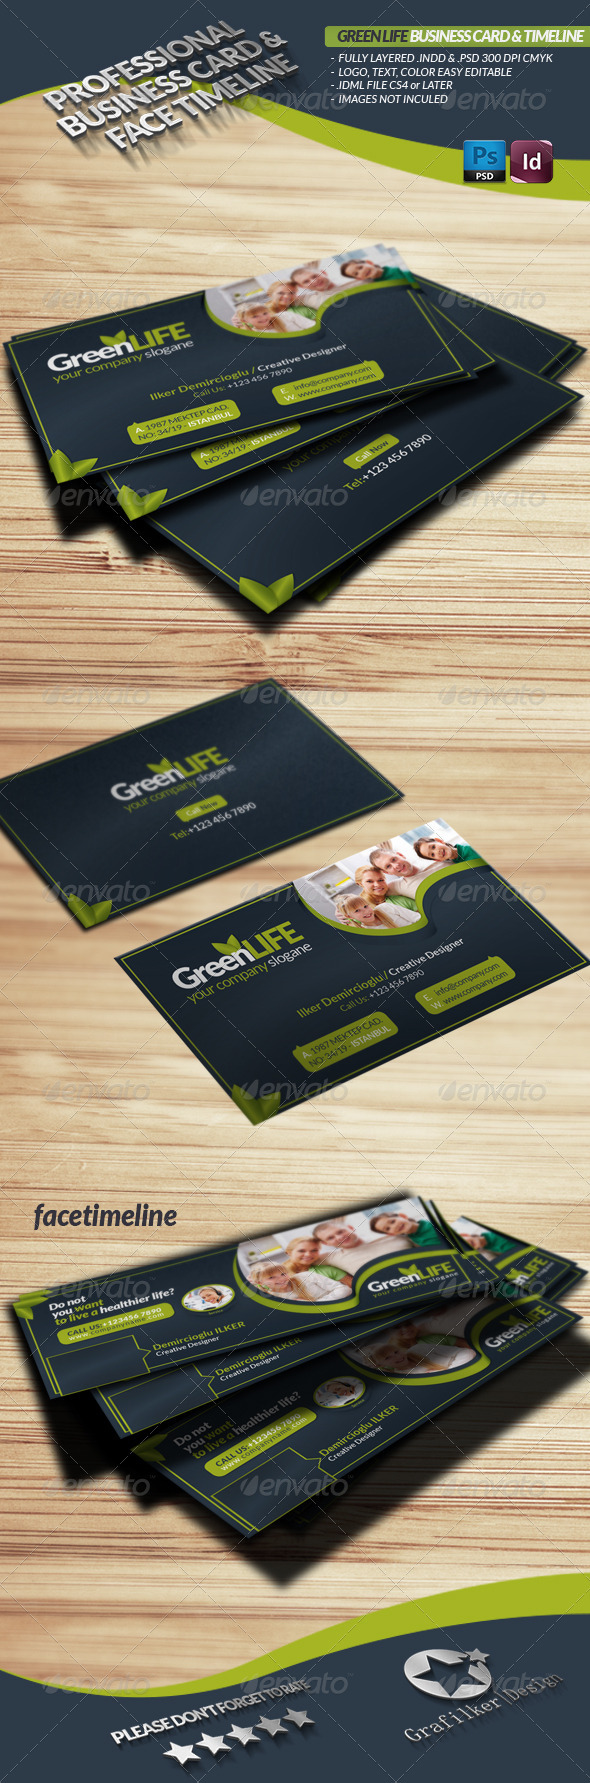 Green Life Business Card & Face-Timeline